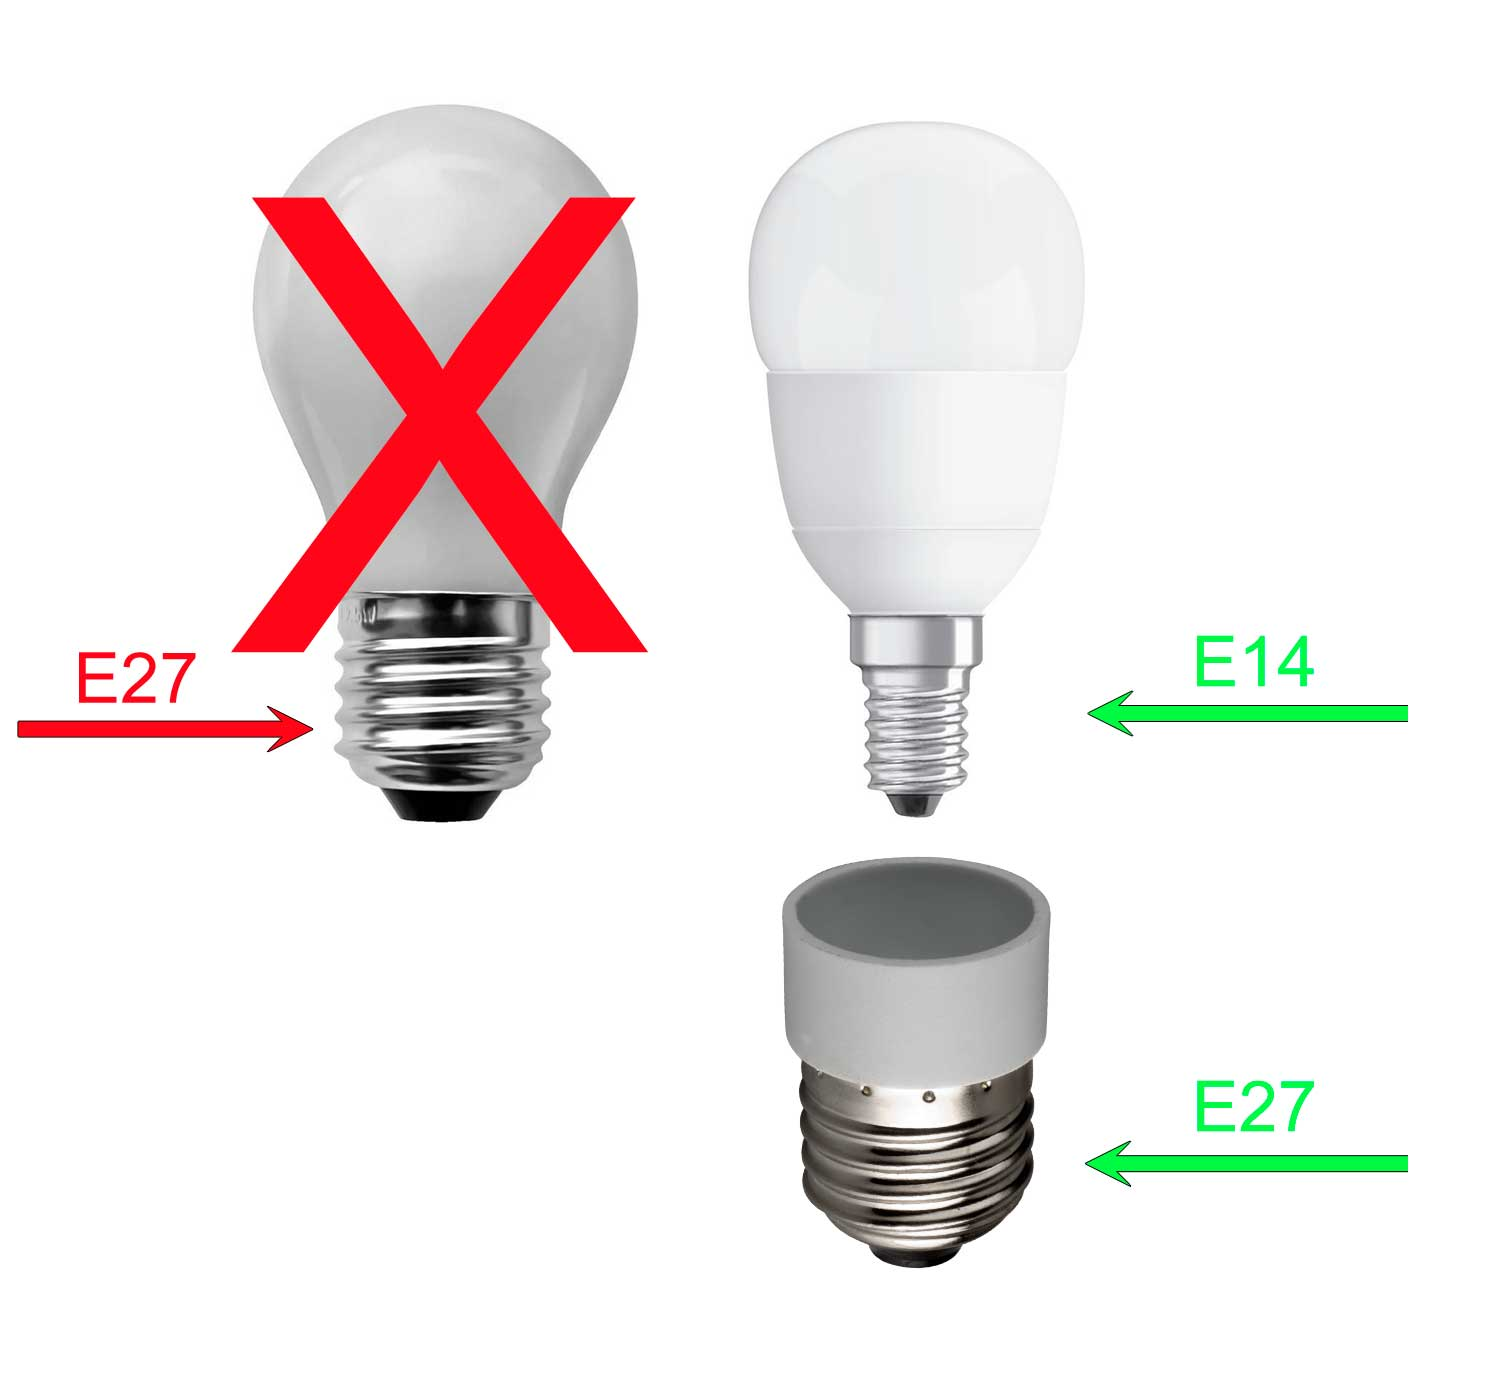 5er set lampen sockel adapter konverter von e14 auf e27 halogen led gl hbirne ebay. Black Bedroom Furniture Sets. Home Design Ideas